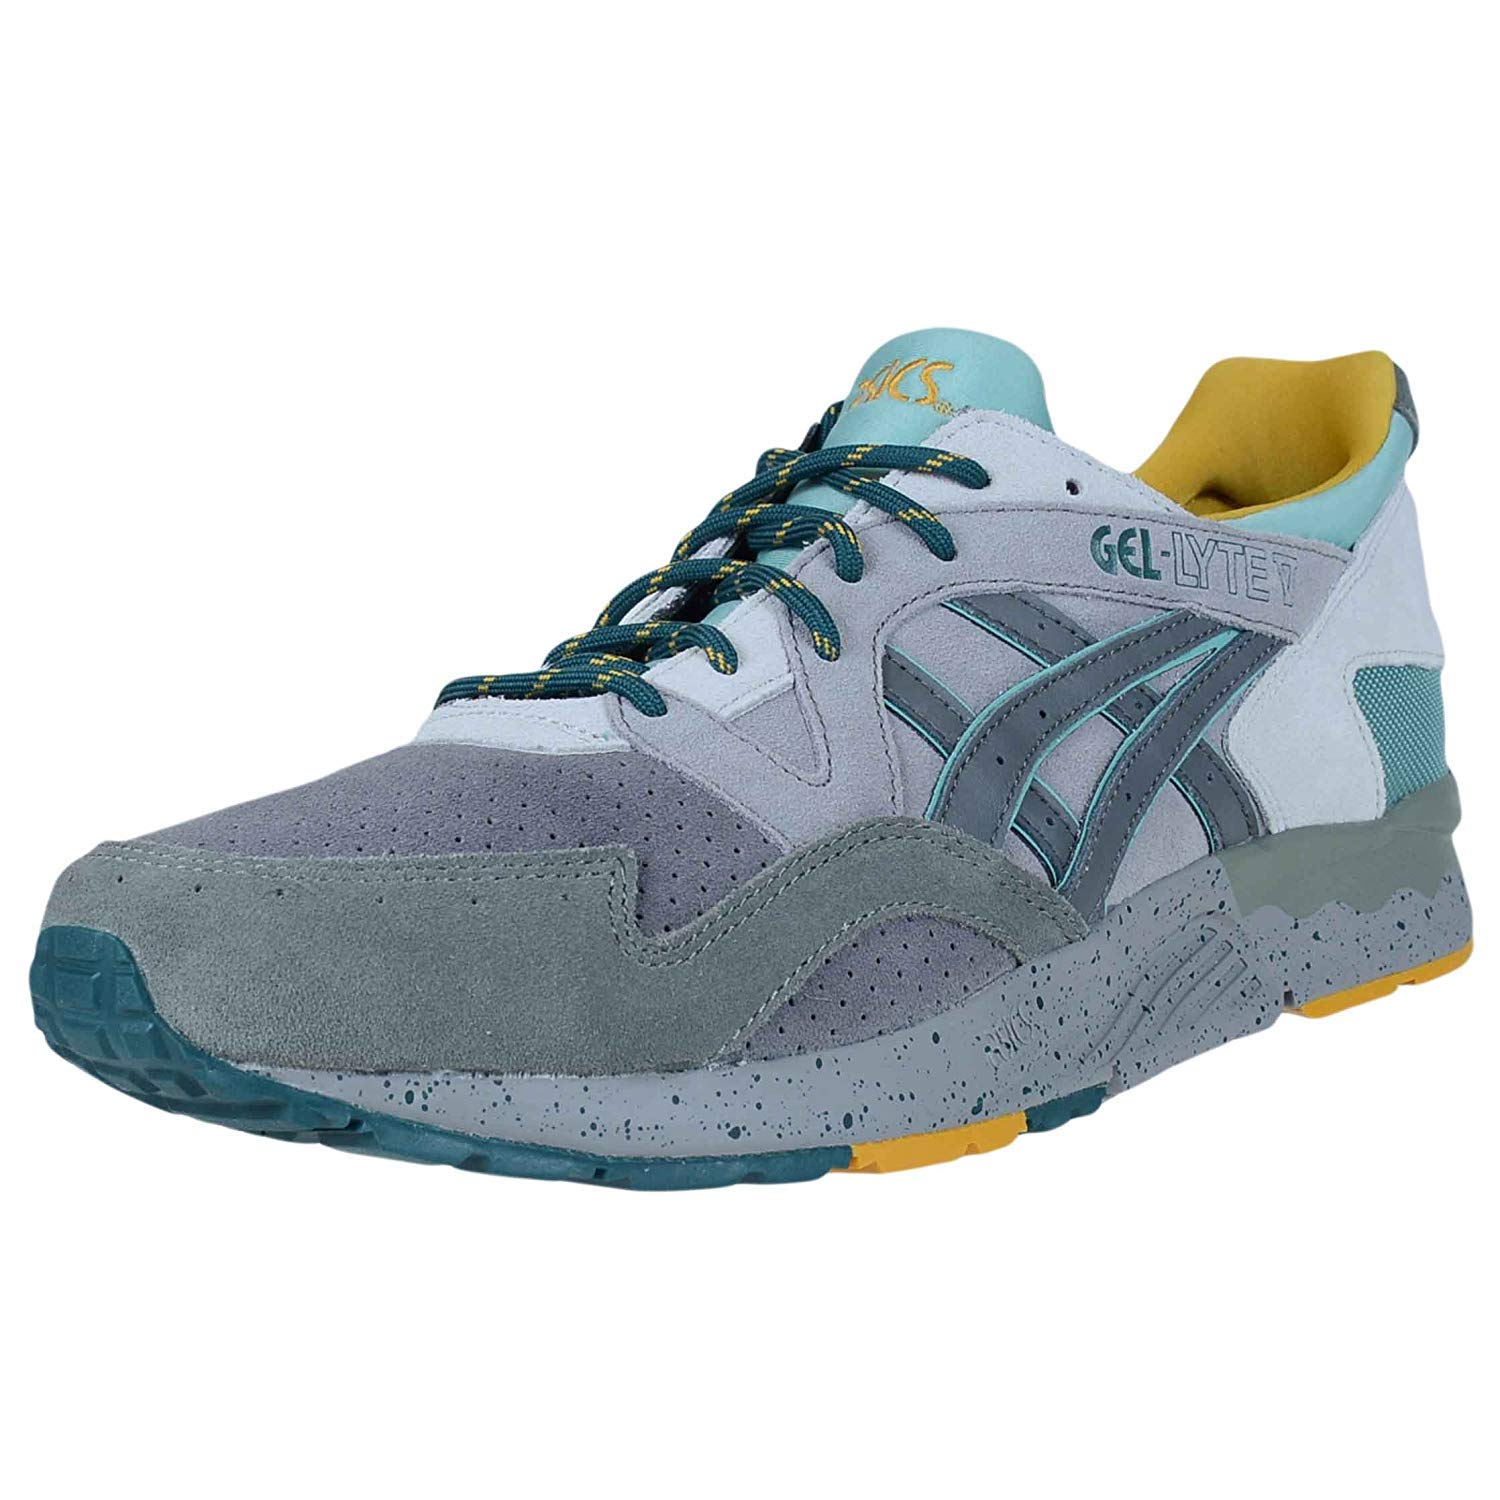 official photos 30fe5 87292 Amazon.com   ASICS Mens Tiger Gel-Lyte V Shoes, Size  7.5 D(M) US, Color  Aluminum Carbon   Shoes